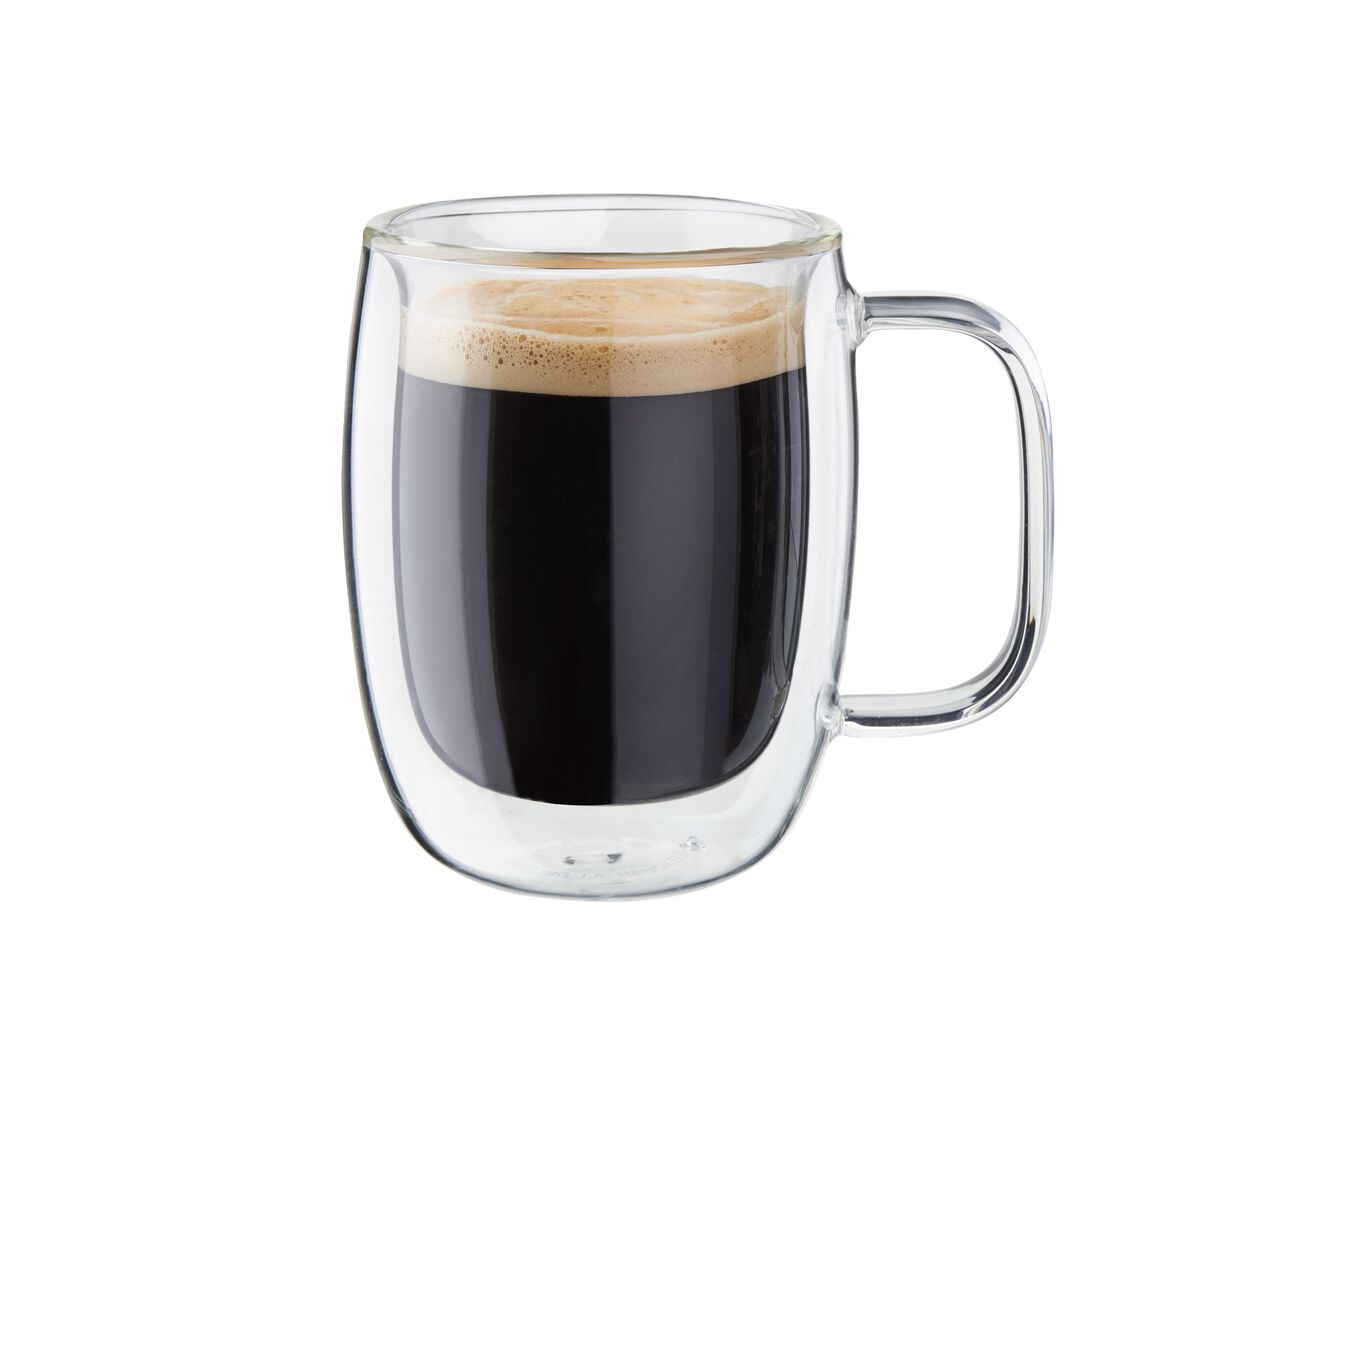 2-pc Double-Wall Glass Double Espresso Mug Set,,large 1